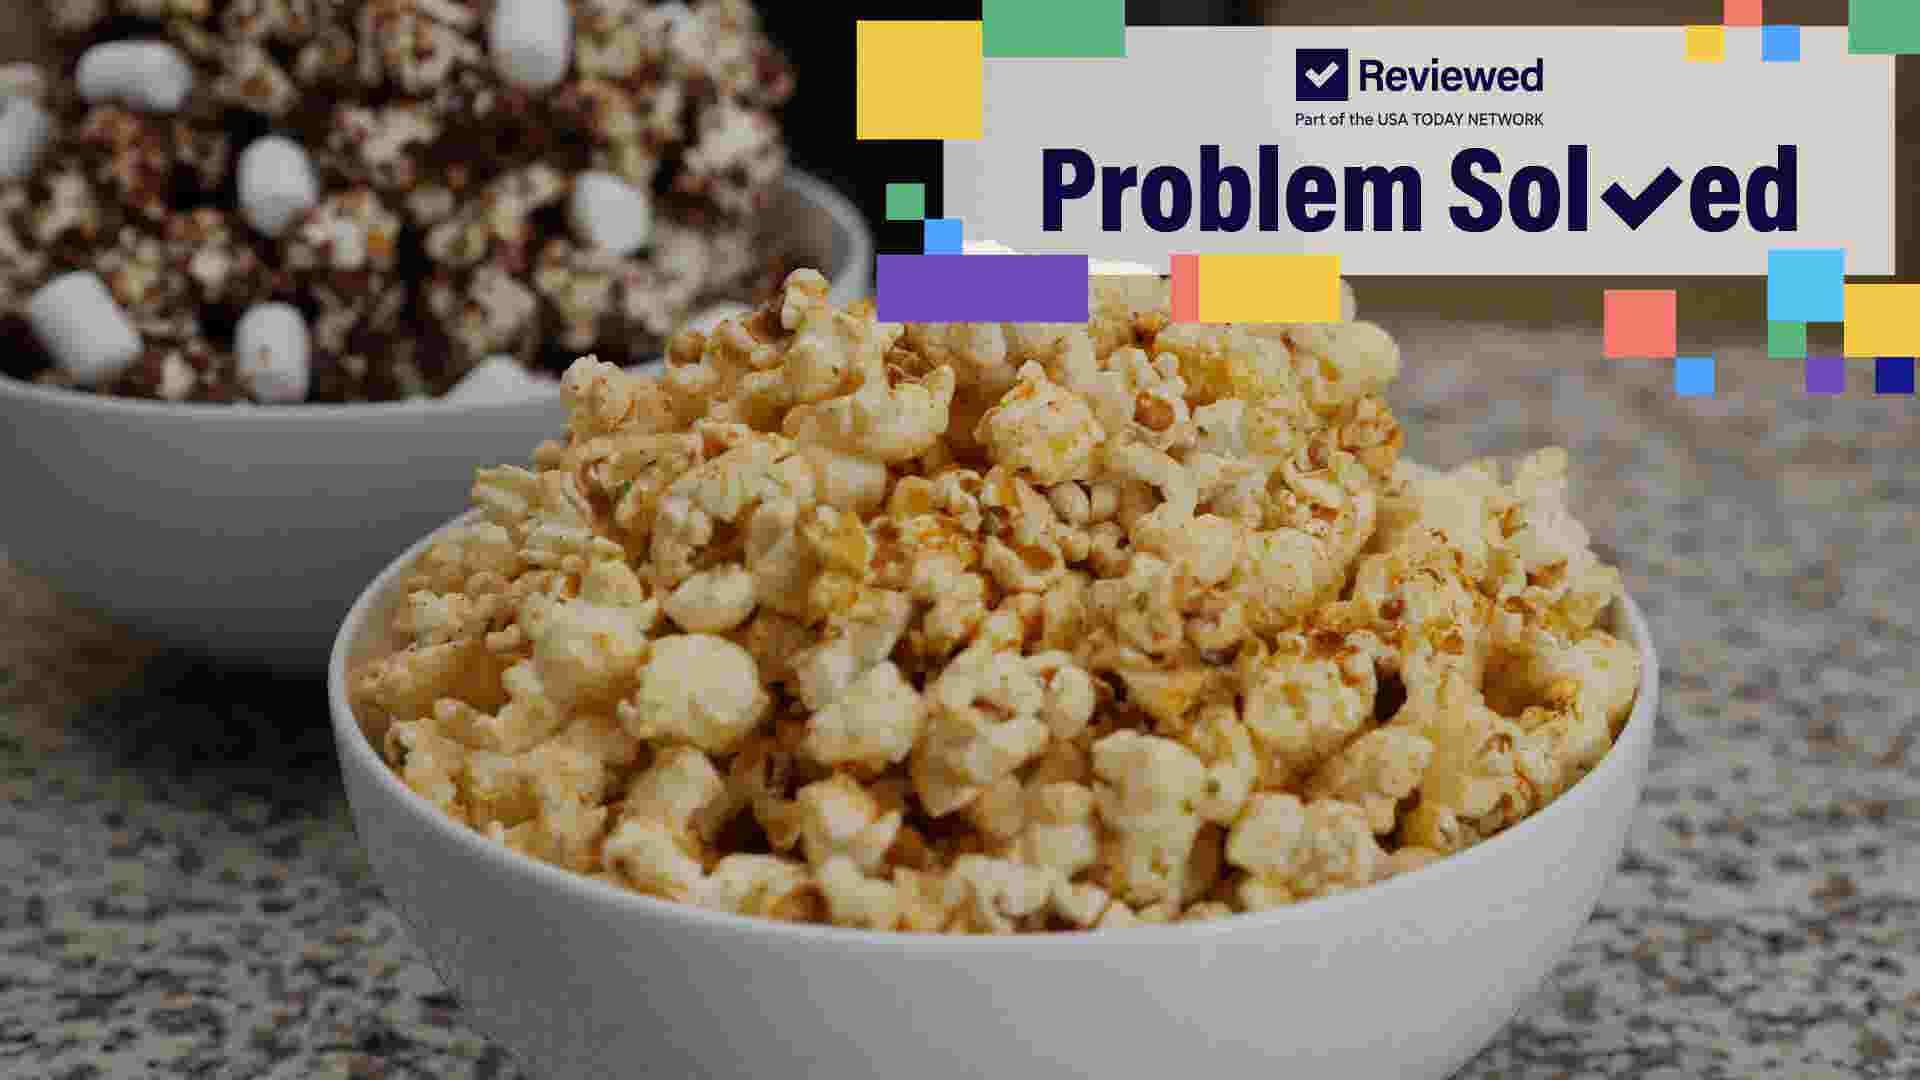 Popcorn recipes: How to make plain, chocolate and peanut butter popcorn